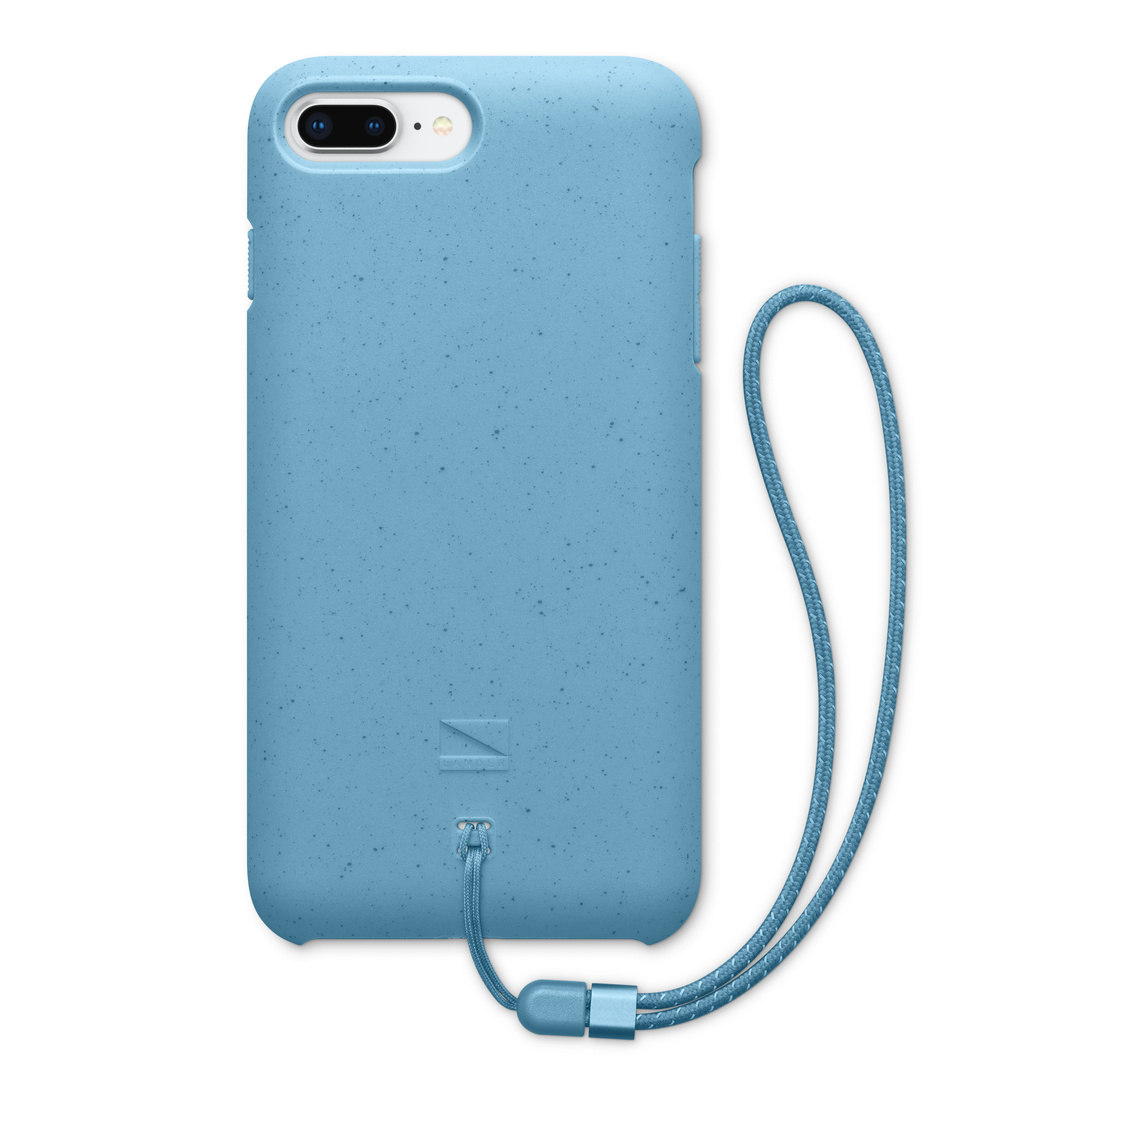 alpple 7 plus iphone case